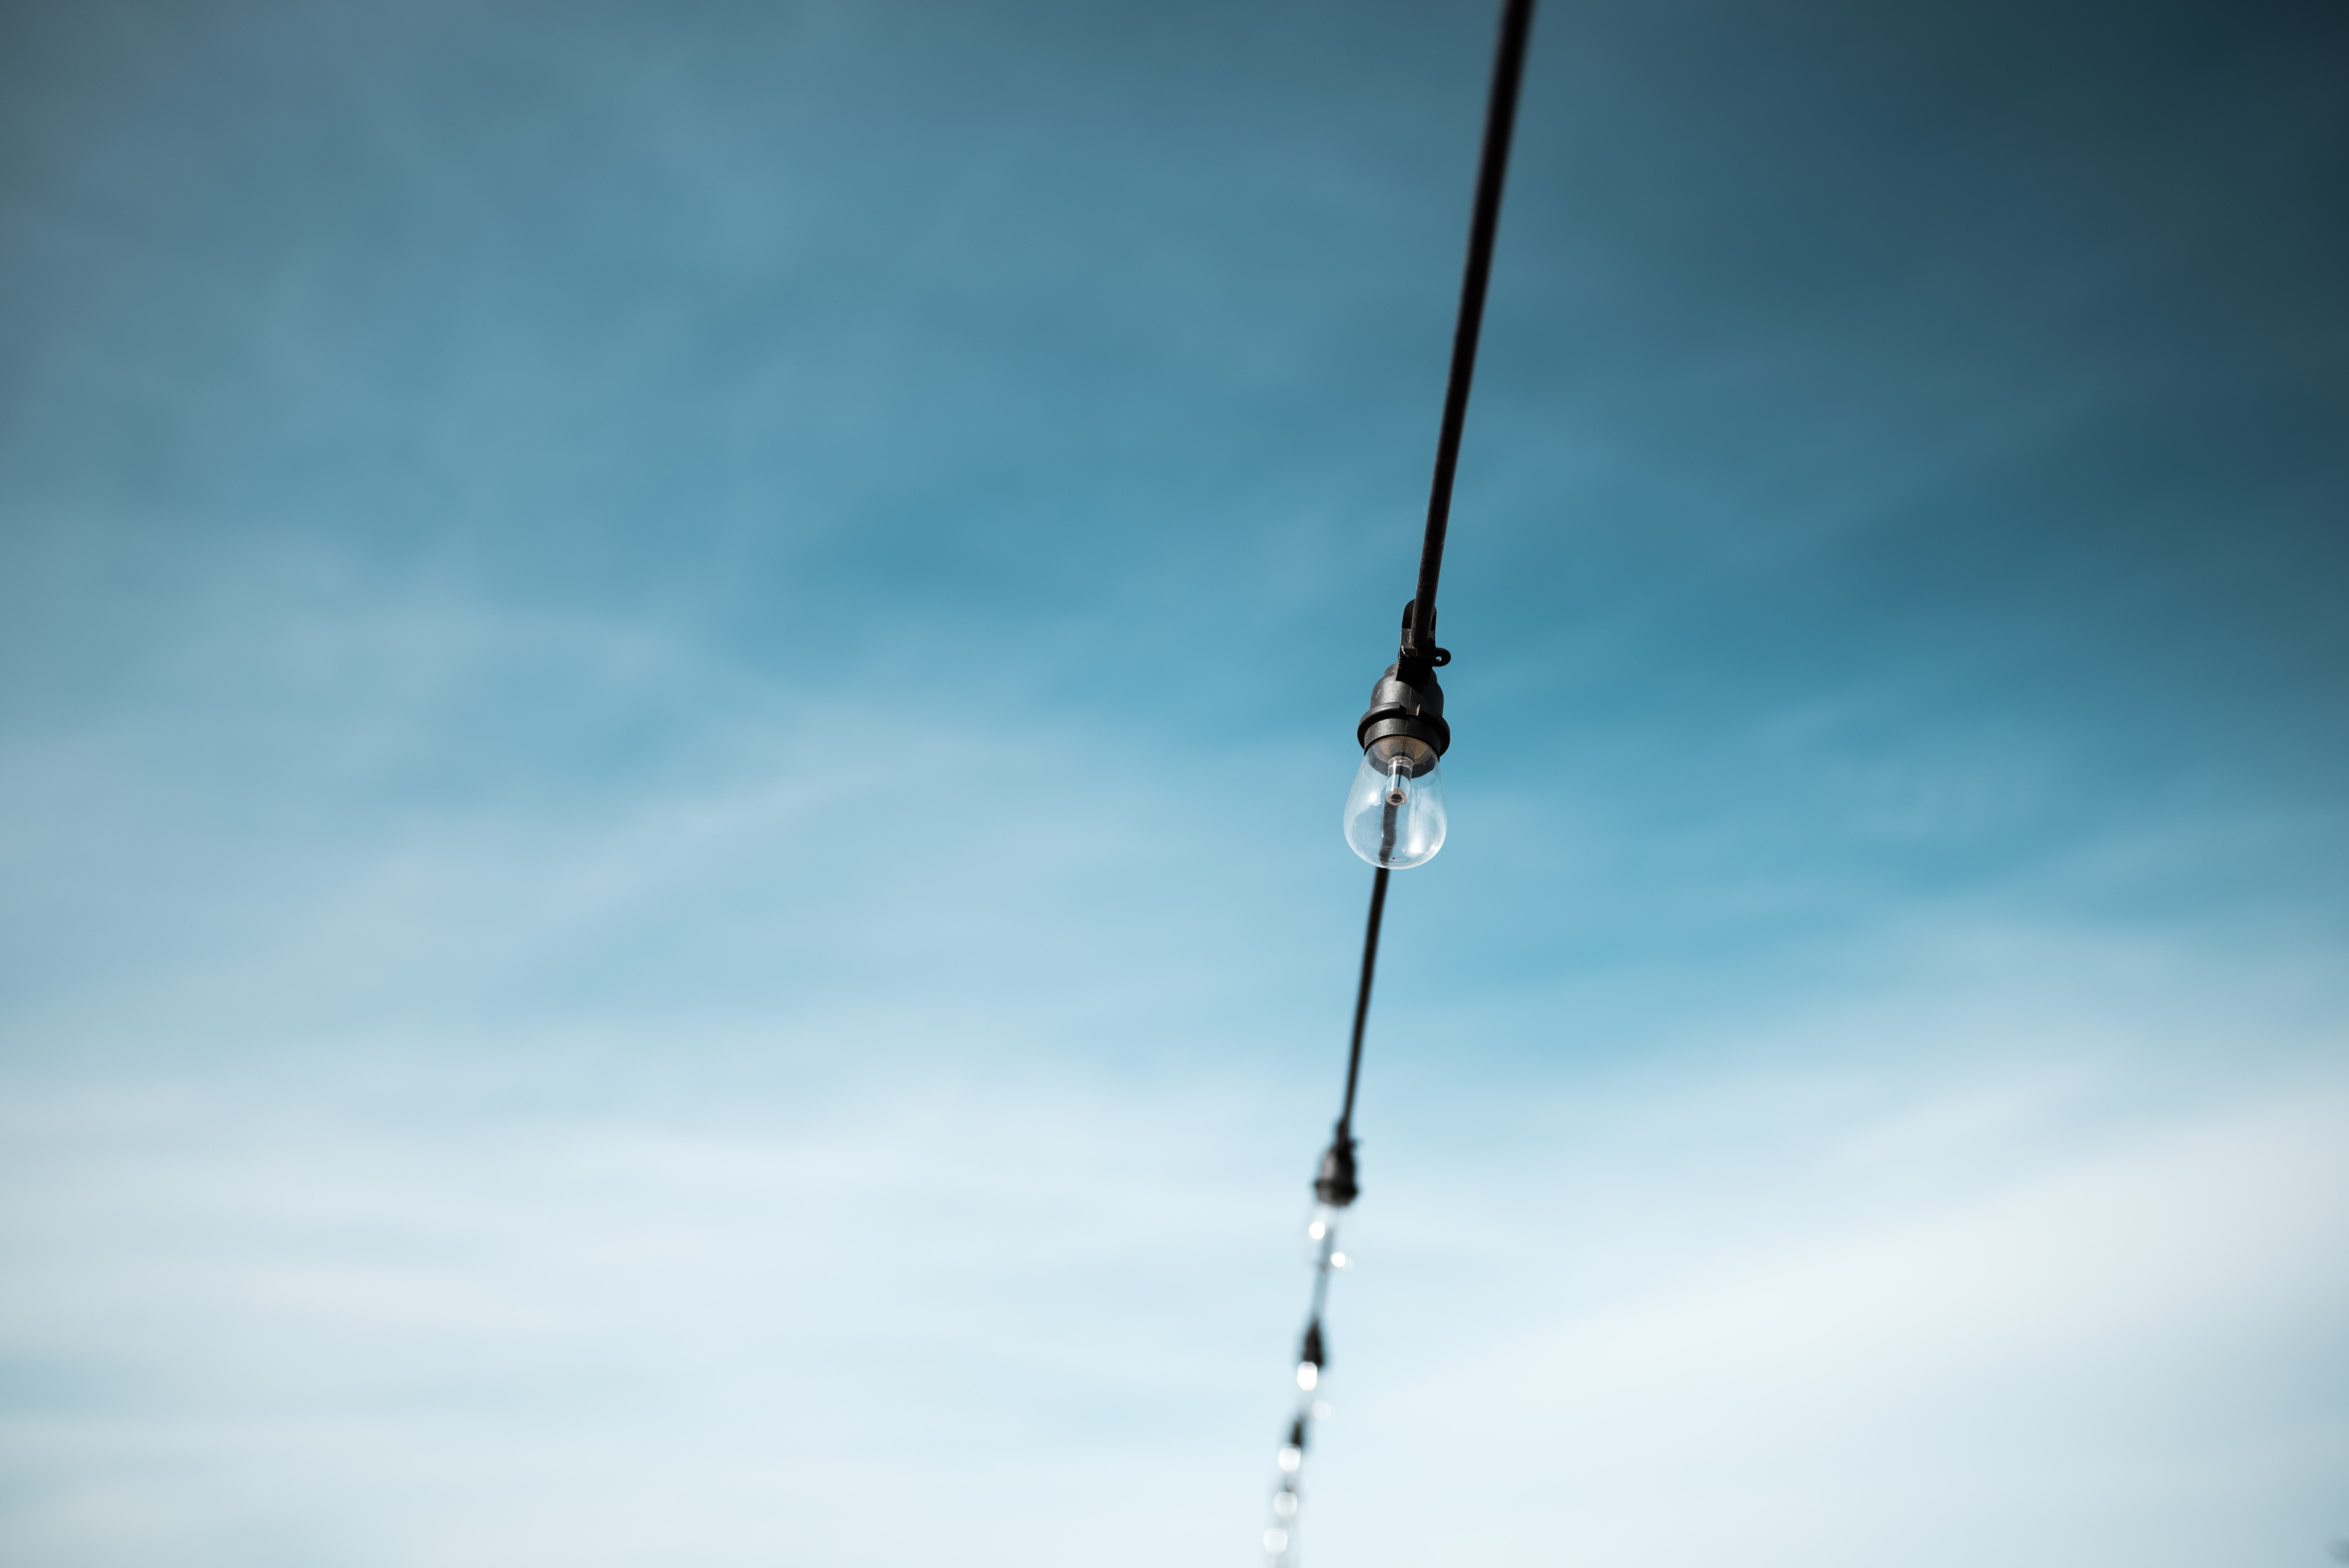 Sky lights hanging from cables underneath a blue cloudy sky